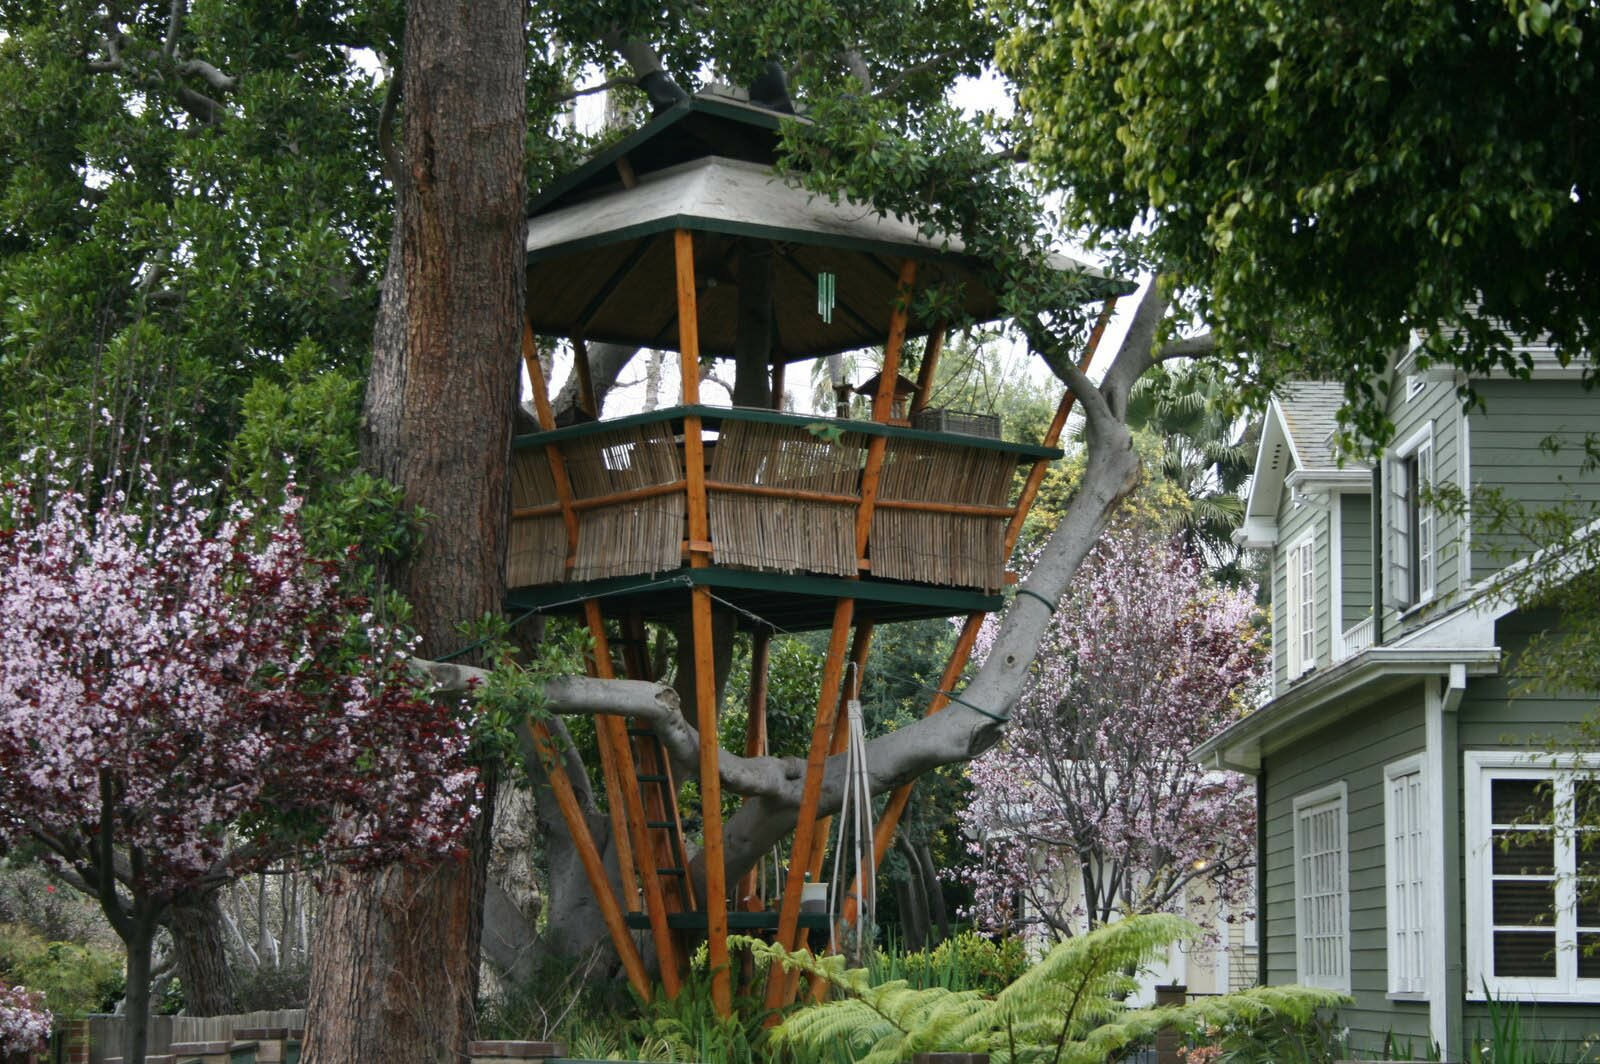 18 amazing tree house designs mostbeautifulthings for Tree house ideas plans